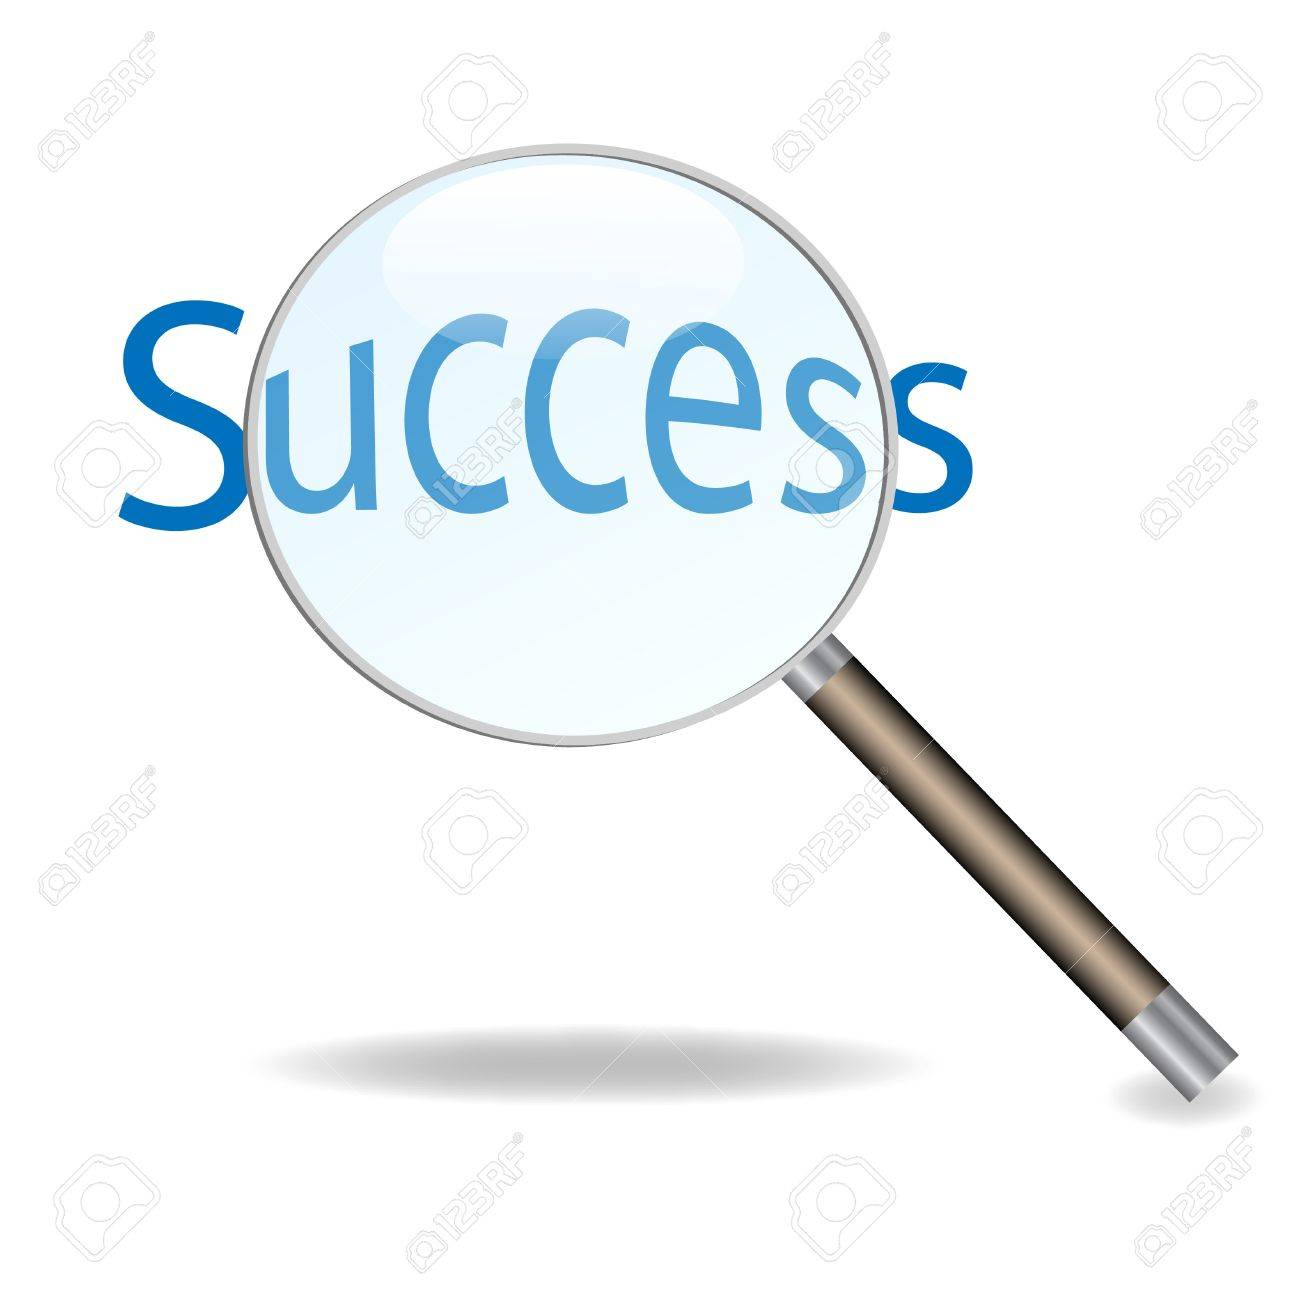 Image of a magnifying glass isolated on a white background focusing on the word Success. - 9717557